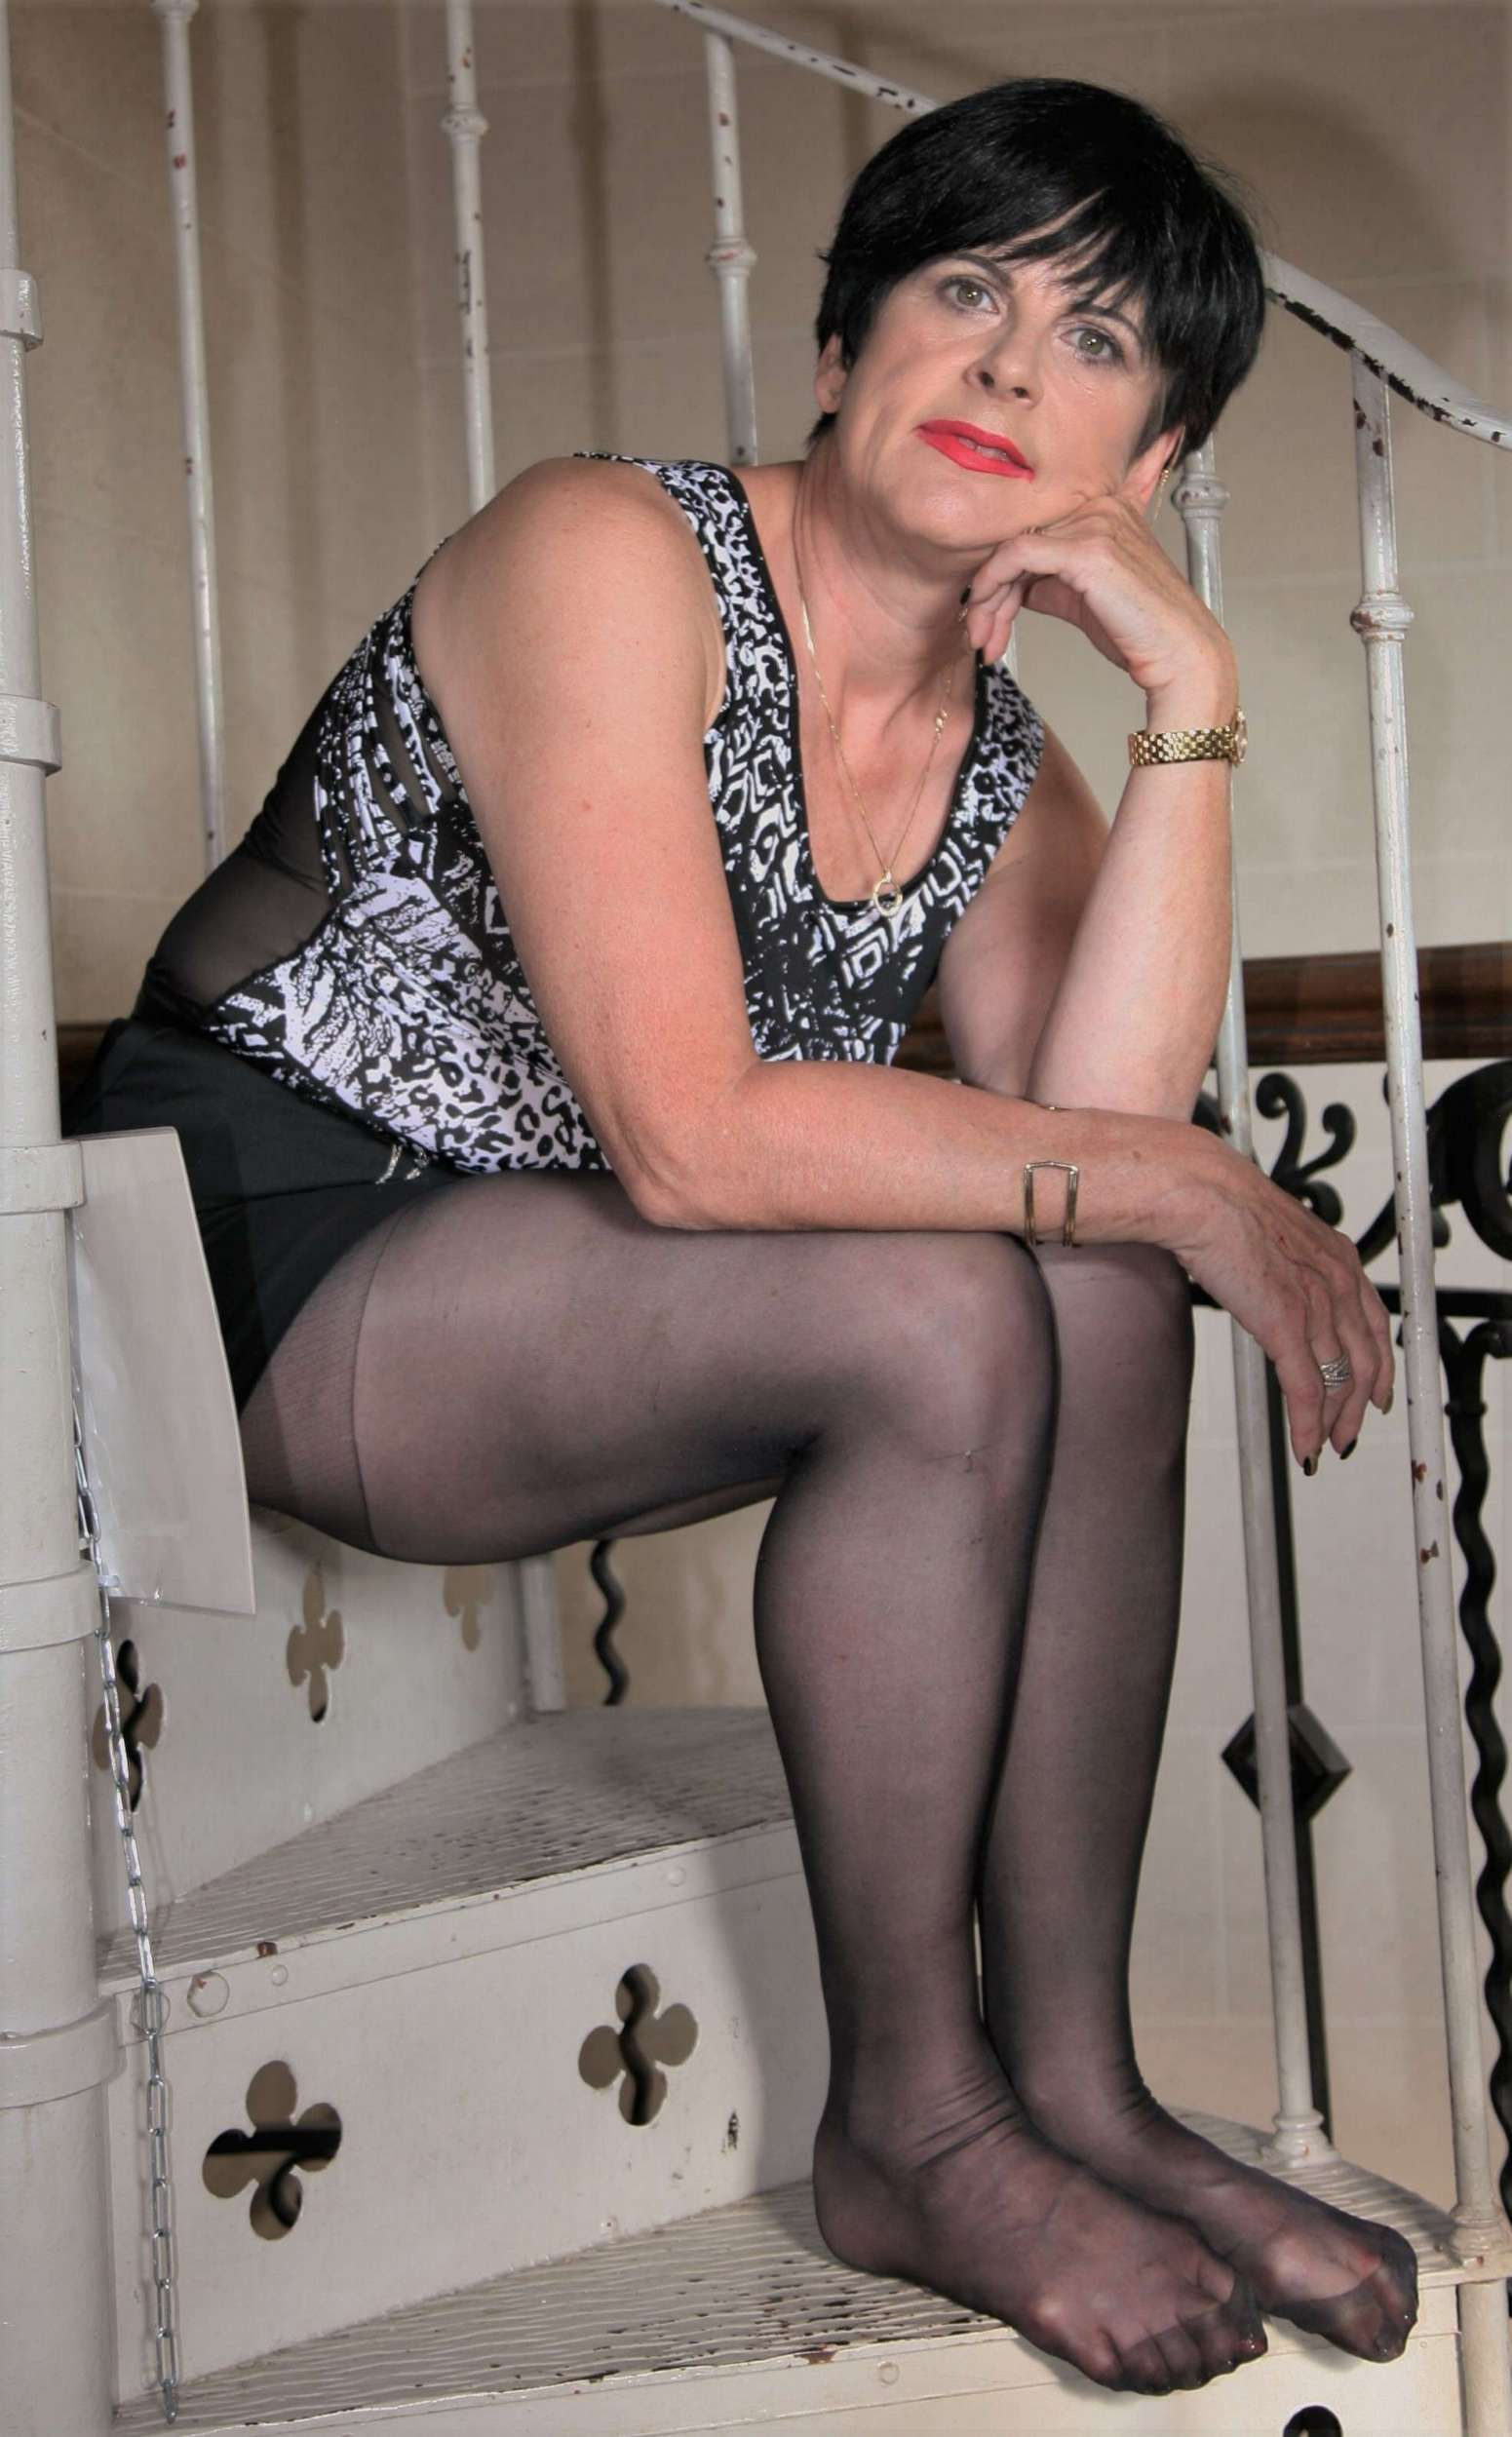 Best Mature Pantyhose Sites Mature 40